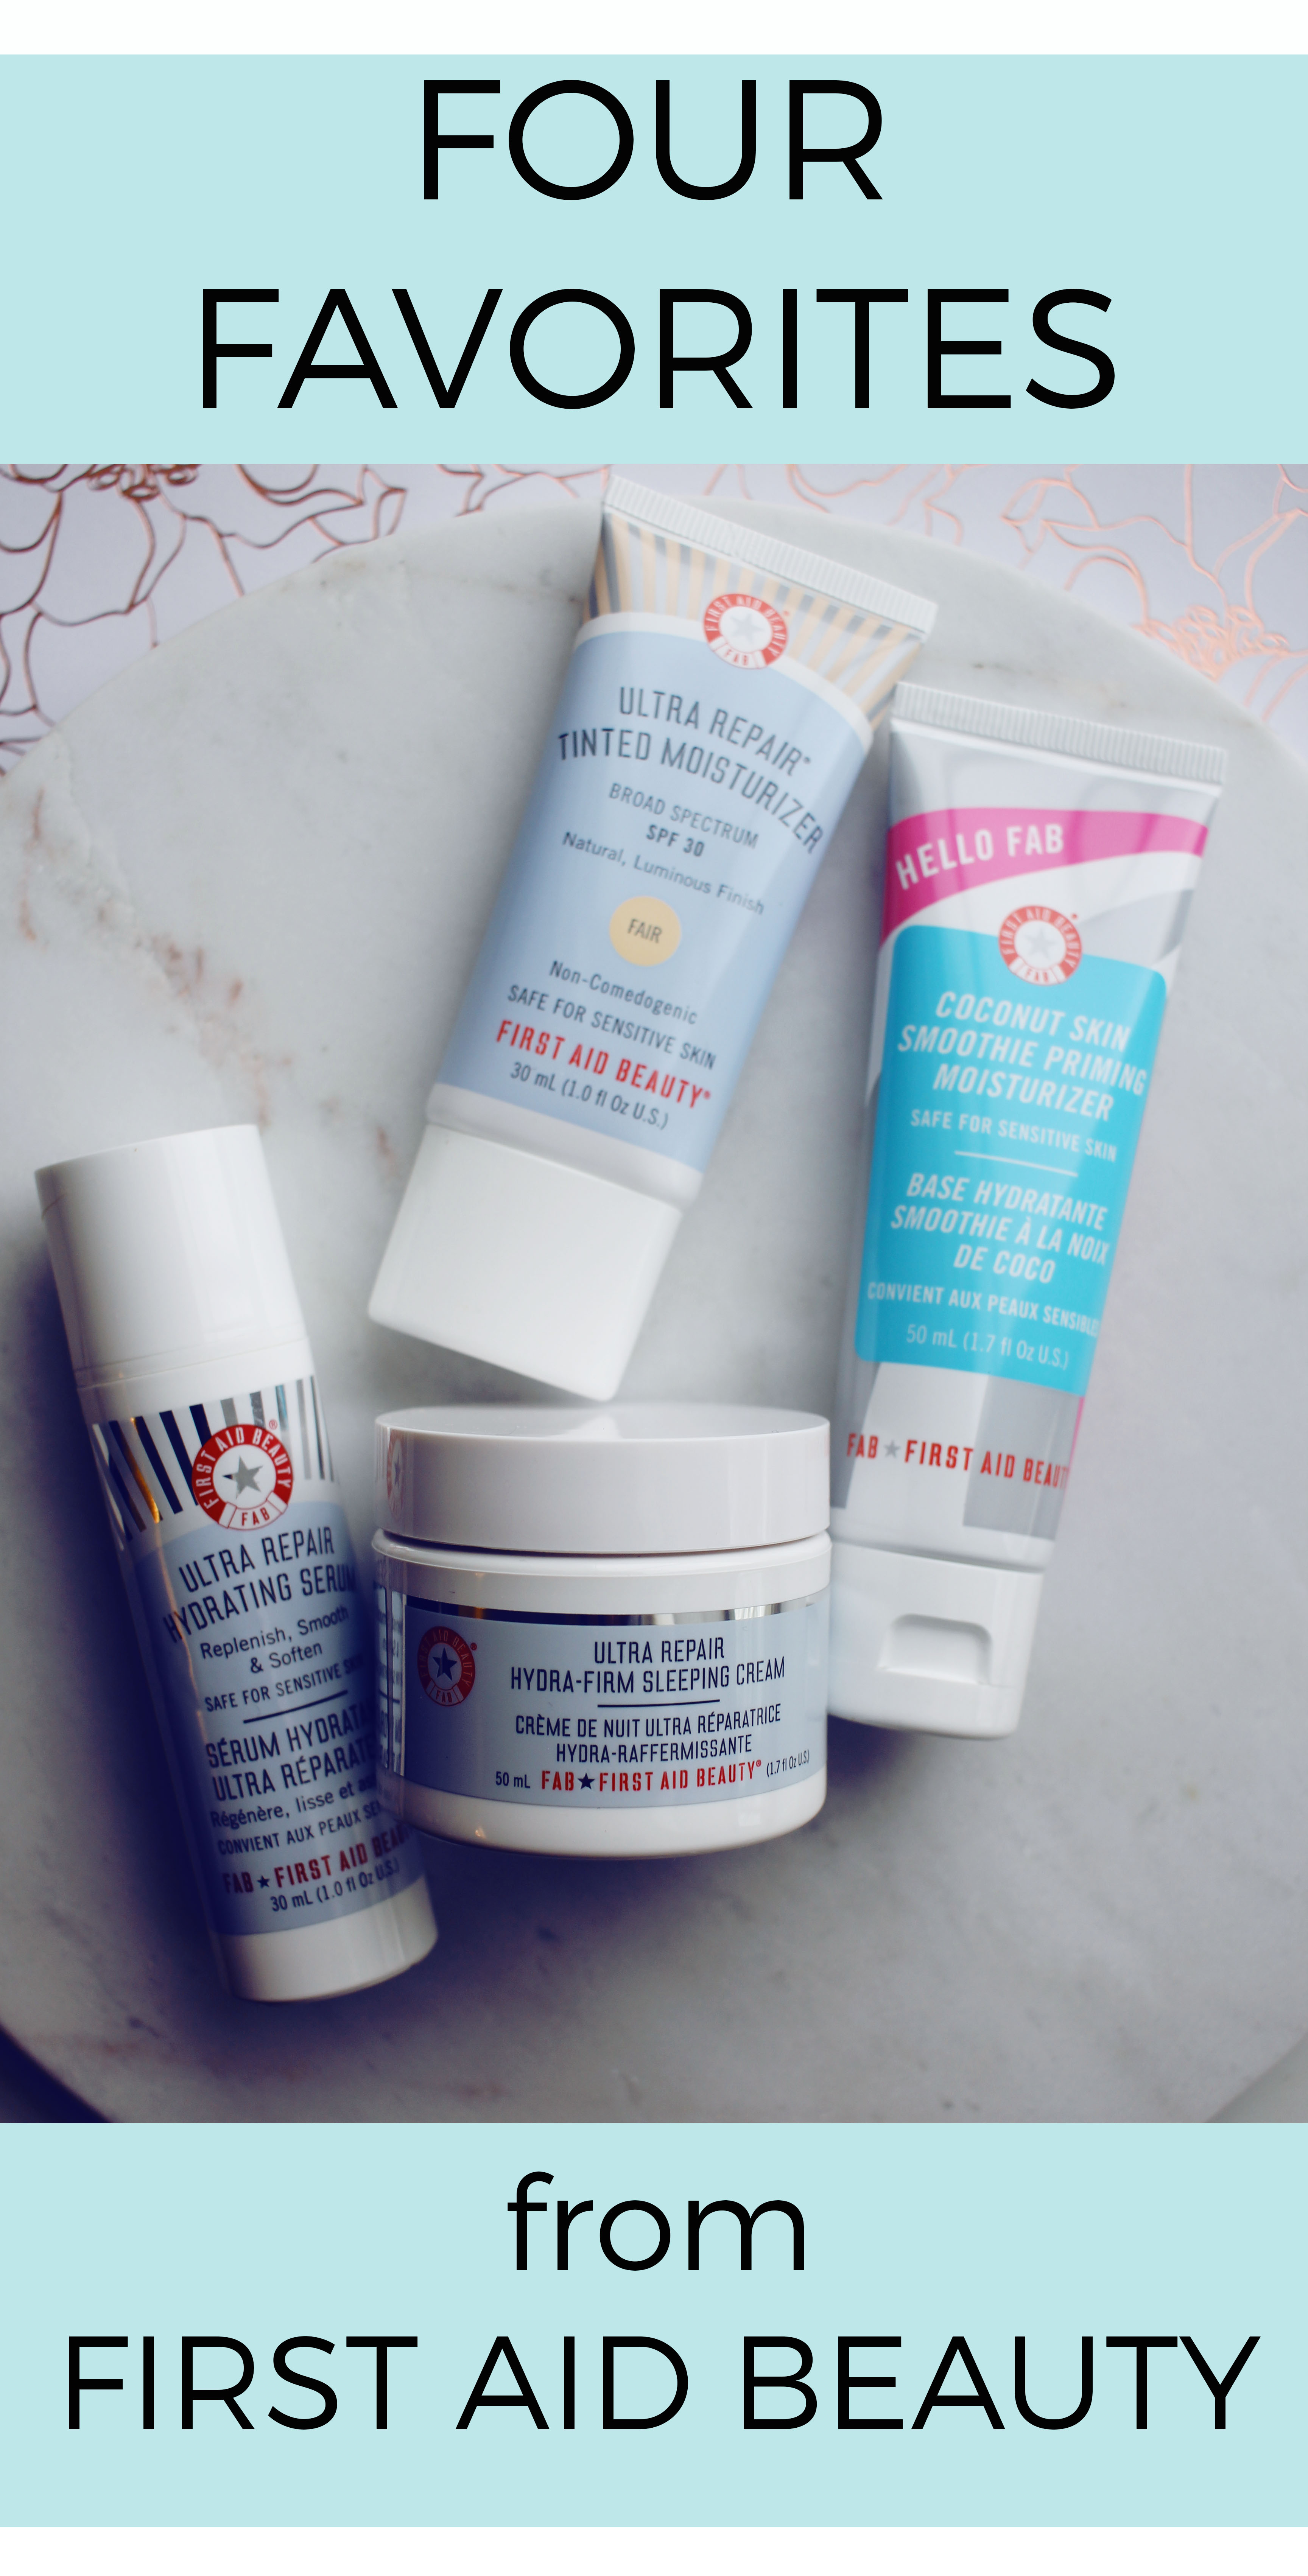 First Aid Beauty skincare product review